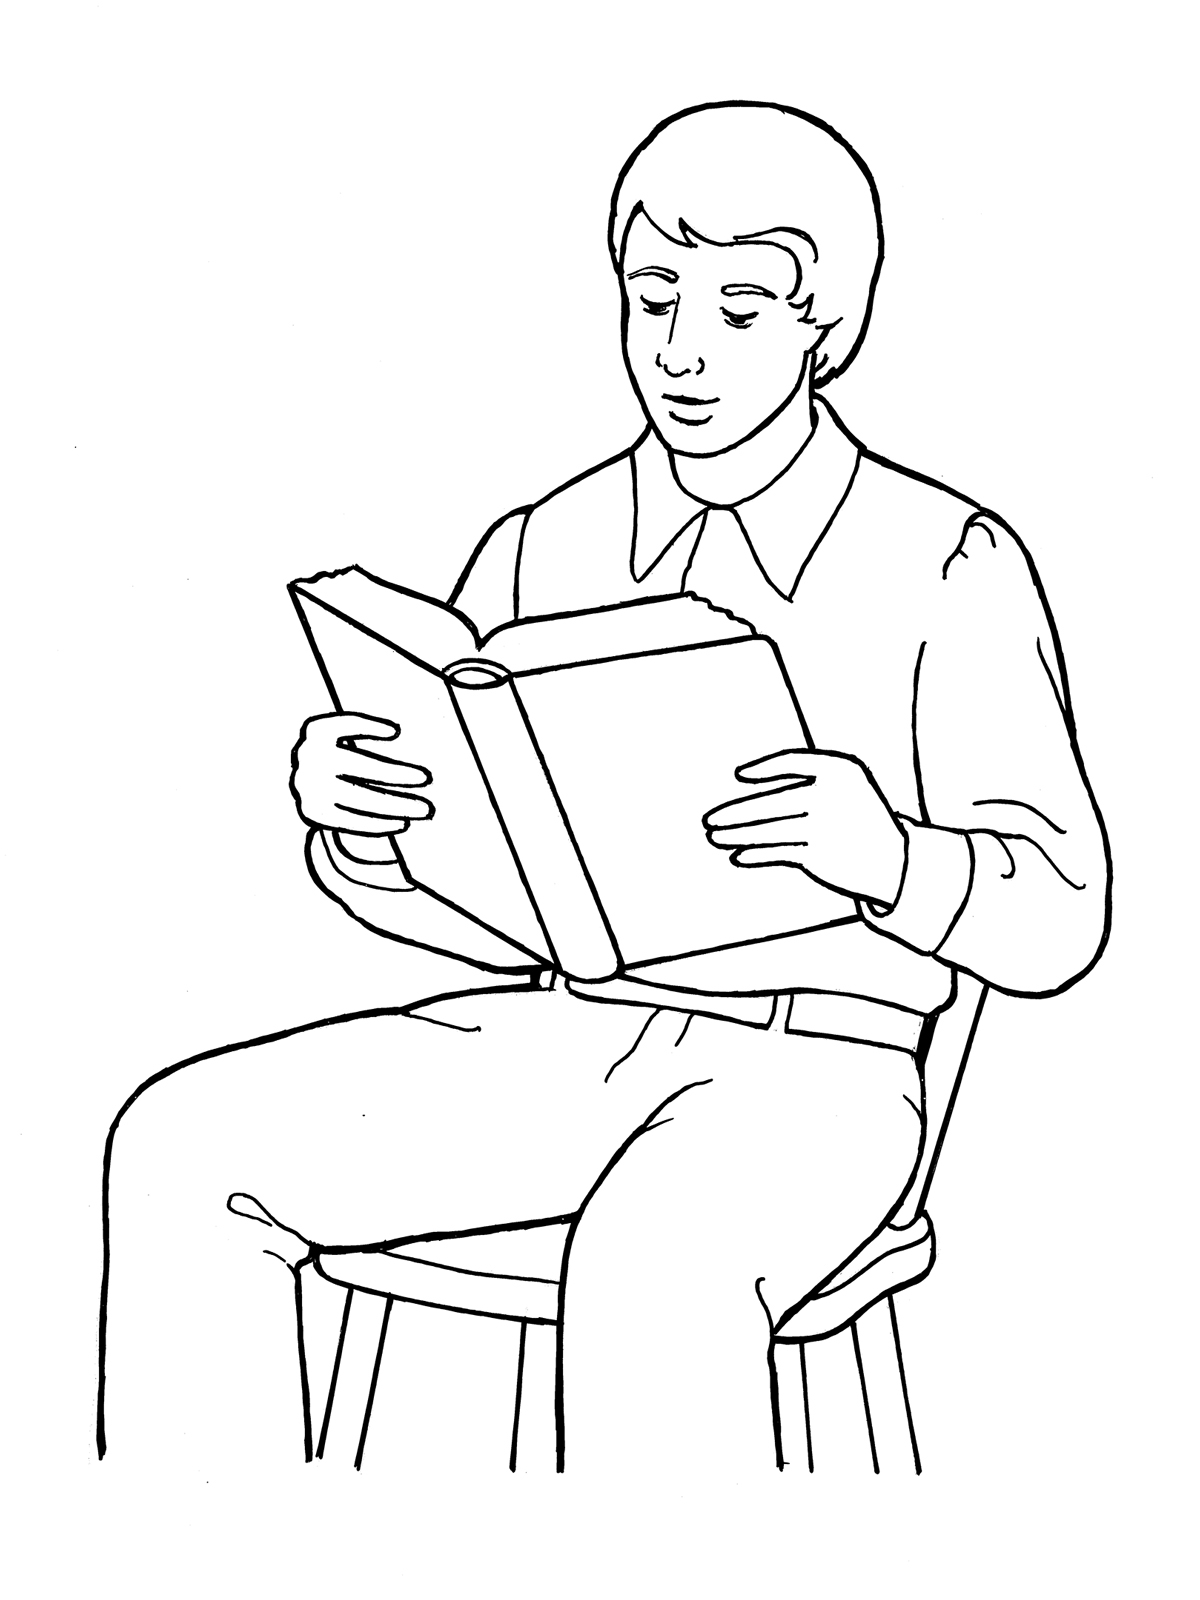 Outline Of Person Coloring Page Manual Guide